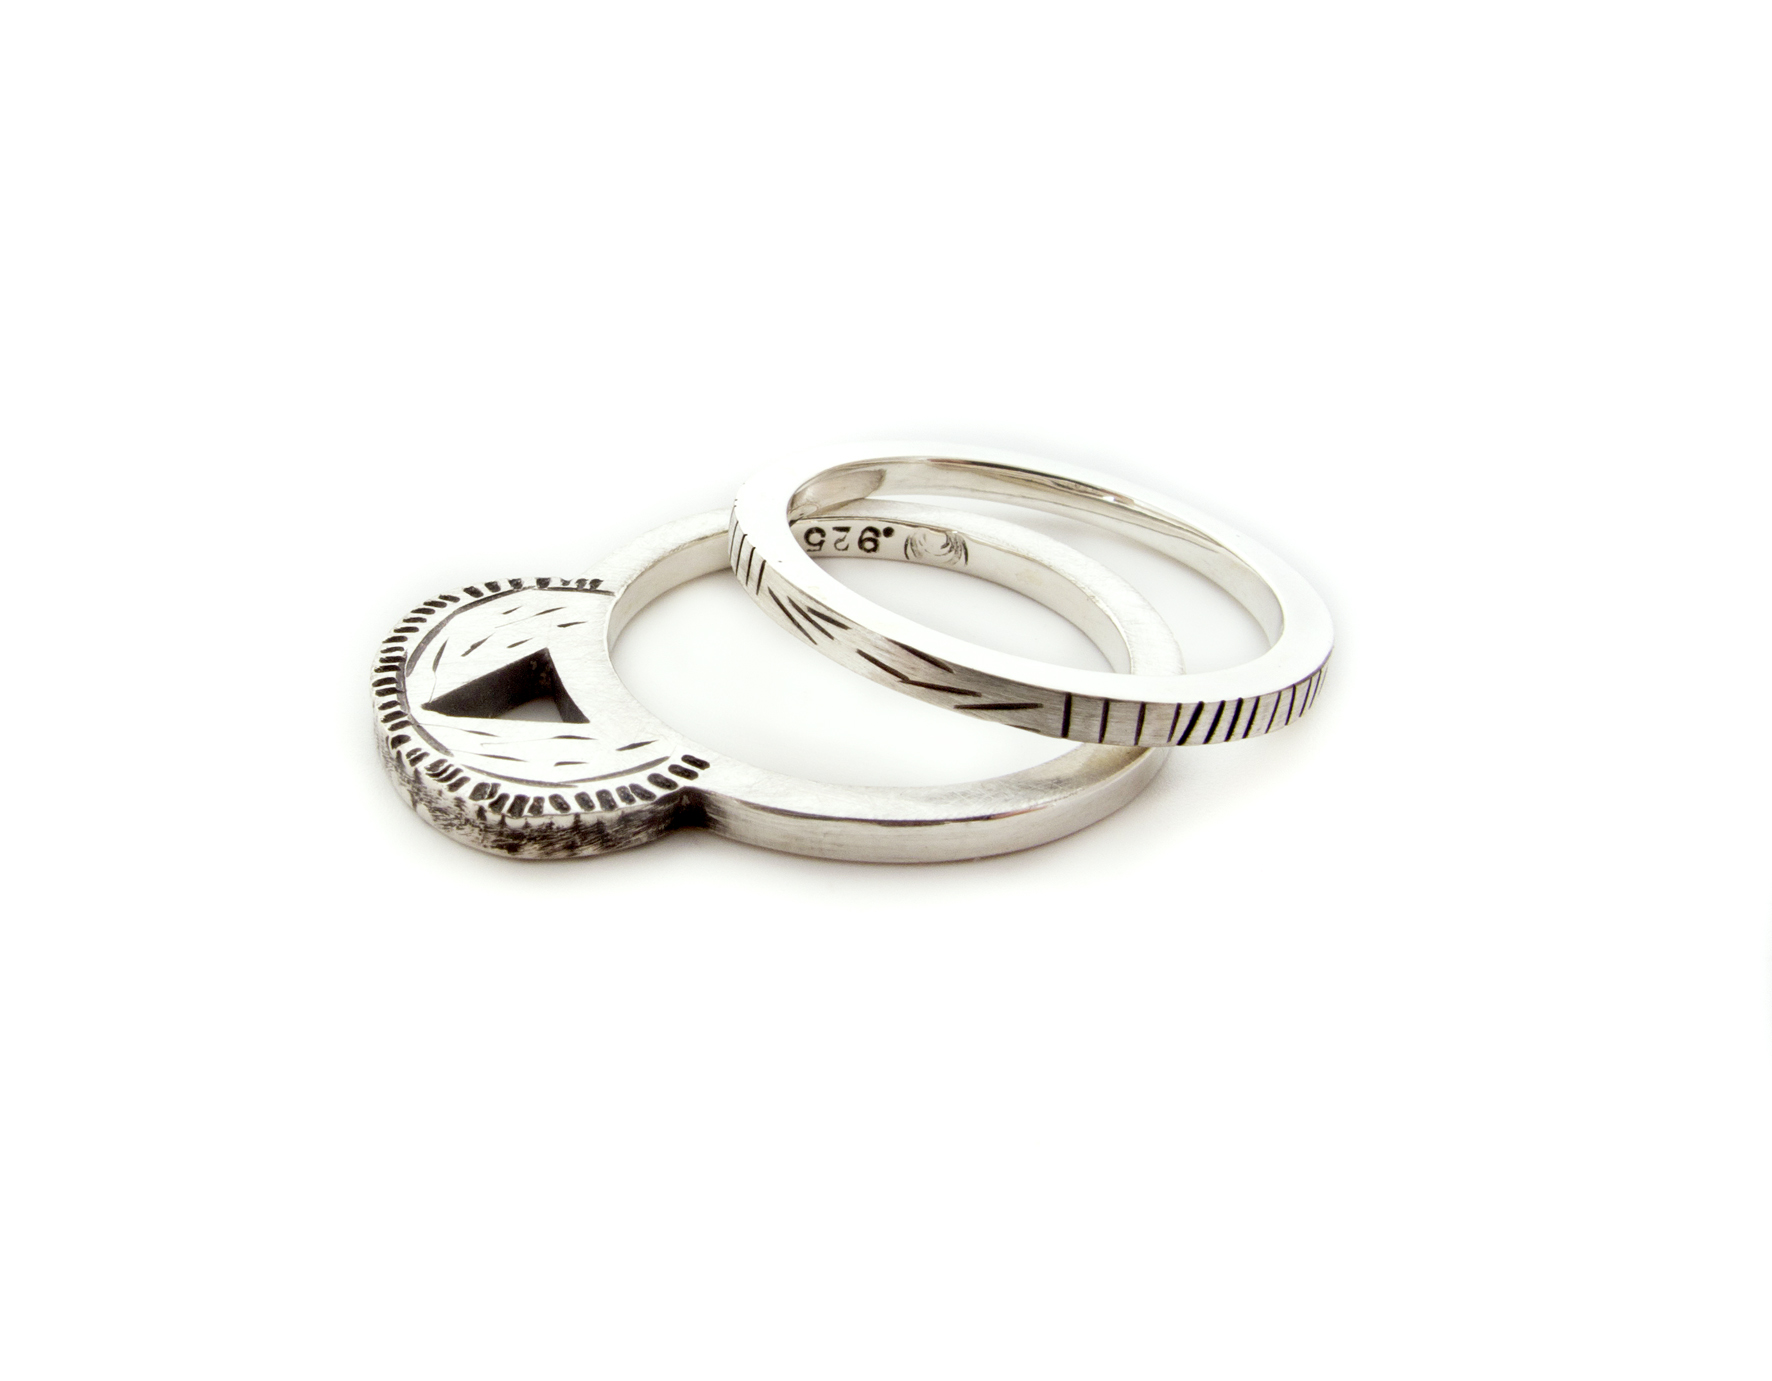 a simplified version of the fancy cactus ring, shown here with the fine lines band, both in sterling silver and sold separately.